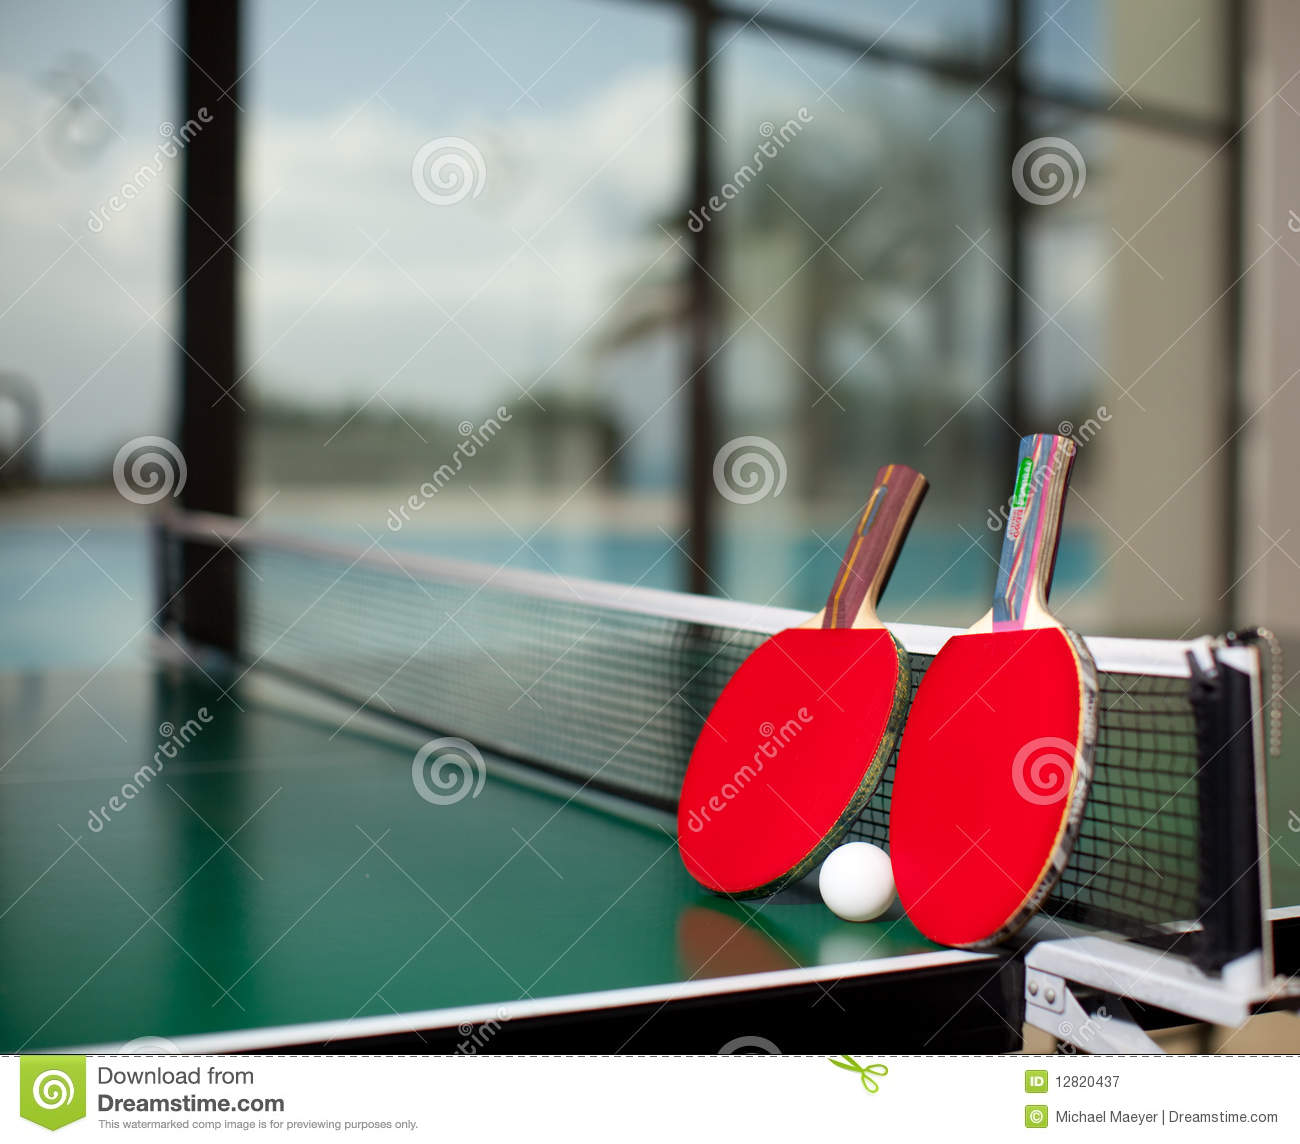 Ping pong table background - Table Tennis Rackets And Ball Royalty Free Stock